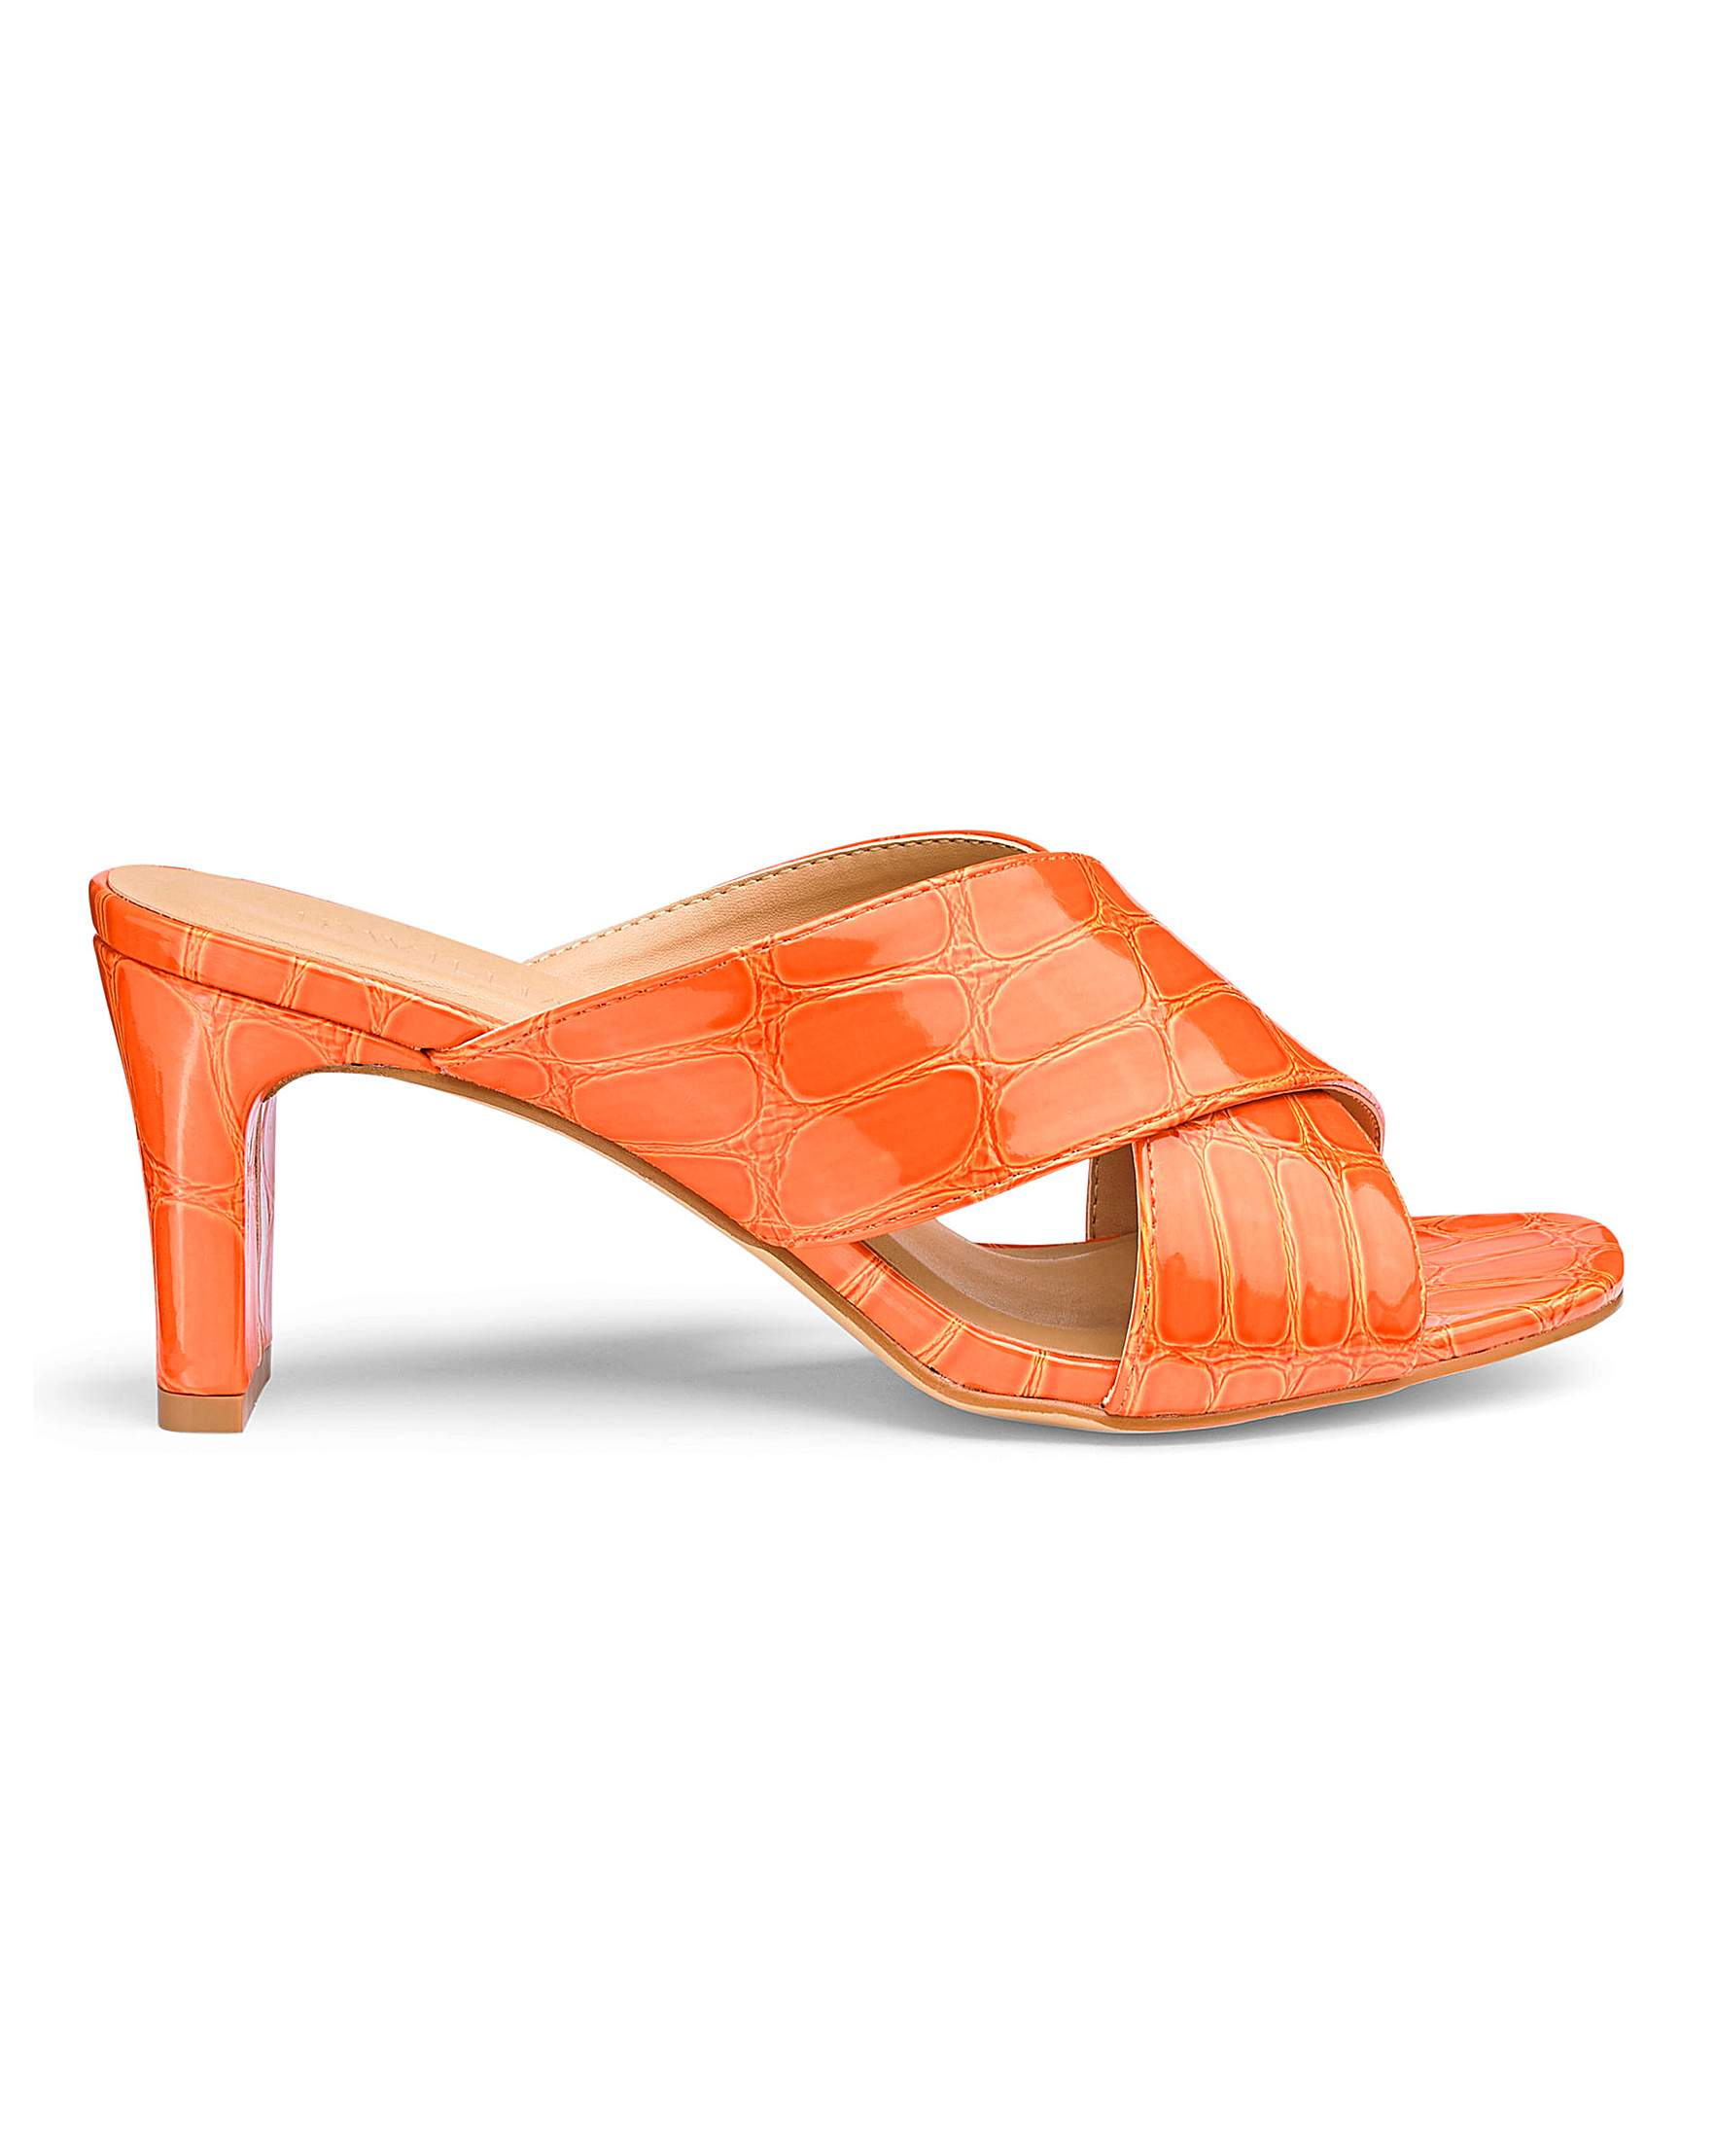 fa15889bfc6 Square Heel Crossover Mule Sandals Wide E Fit